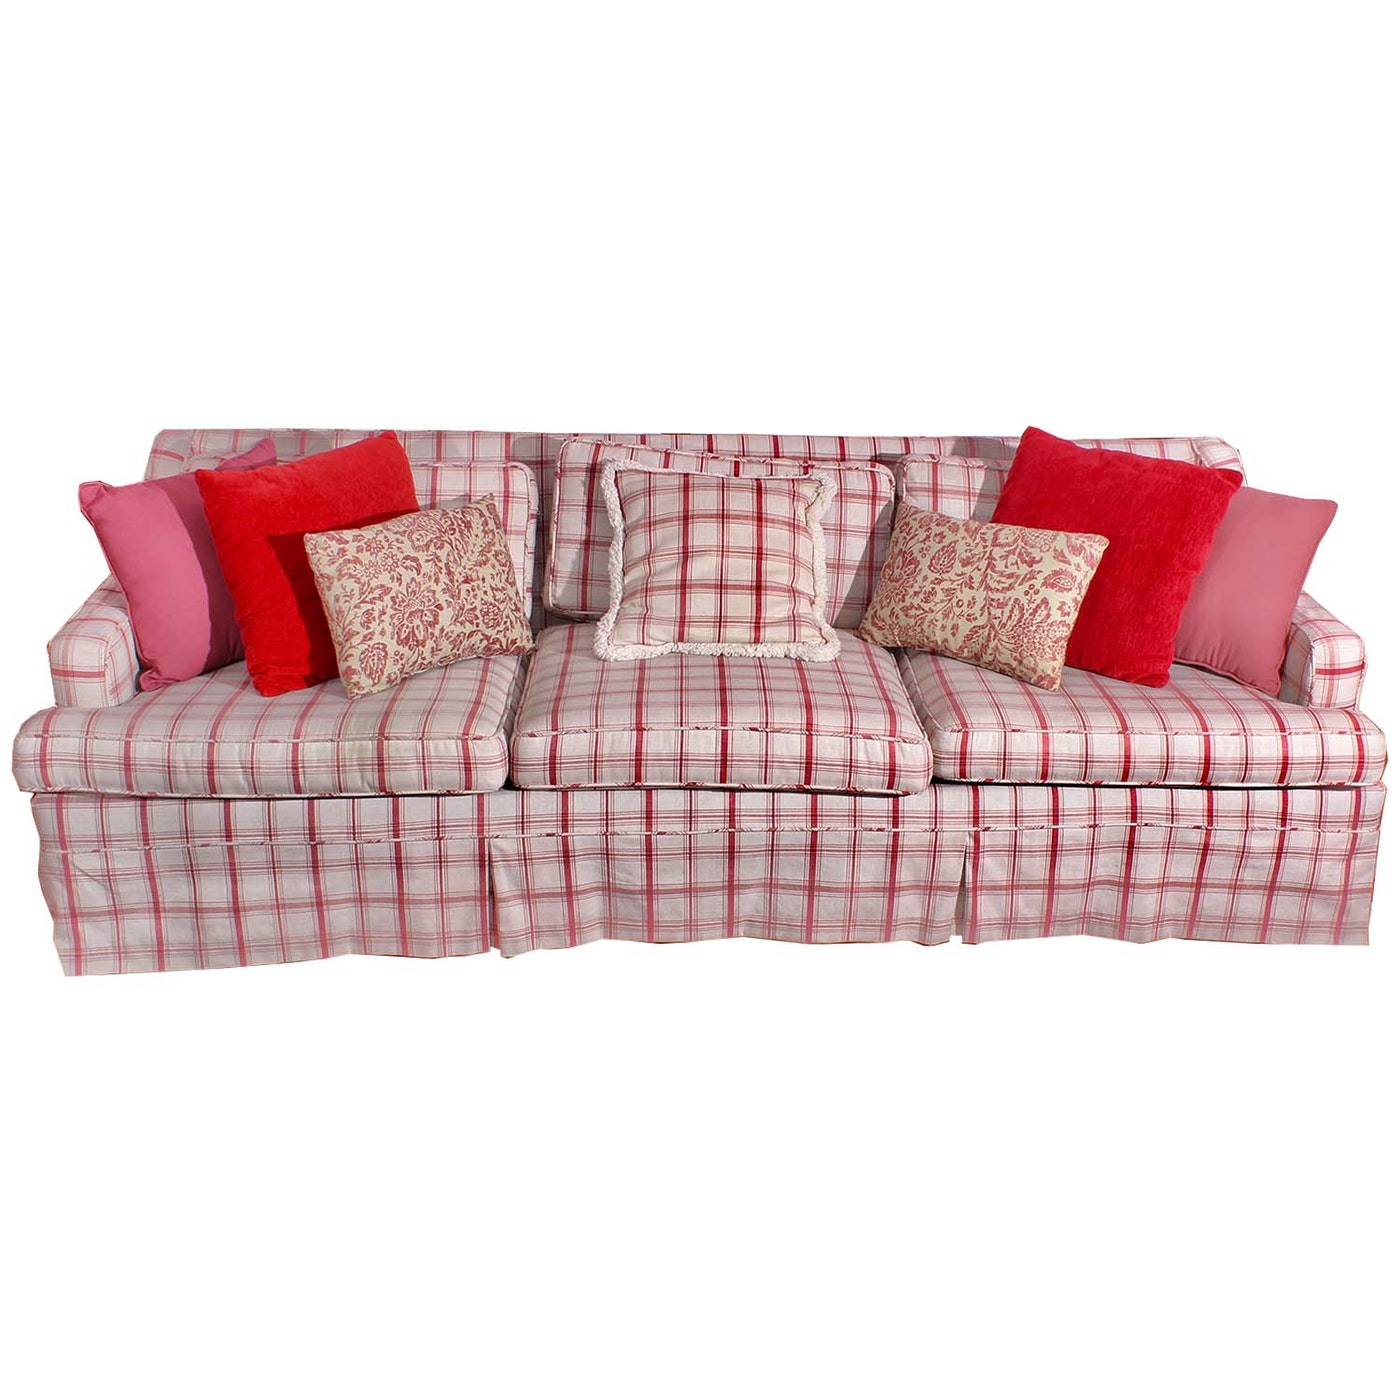 Red And Cream Plaid Sofa And Accent Pillows Ebth